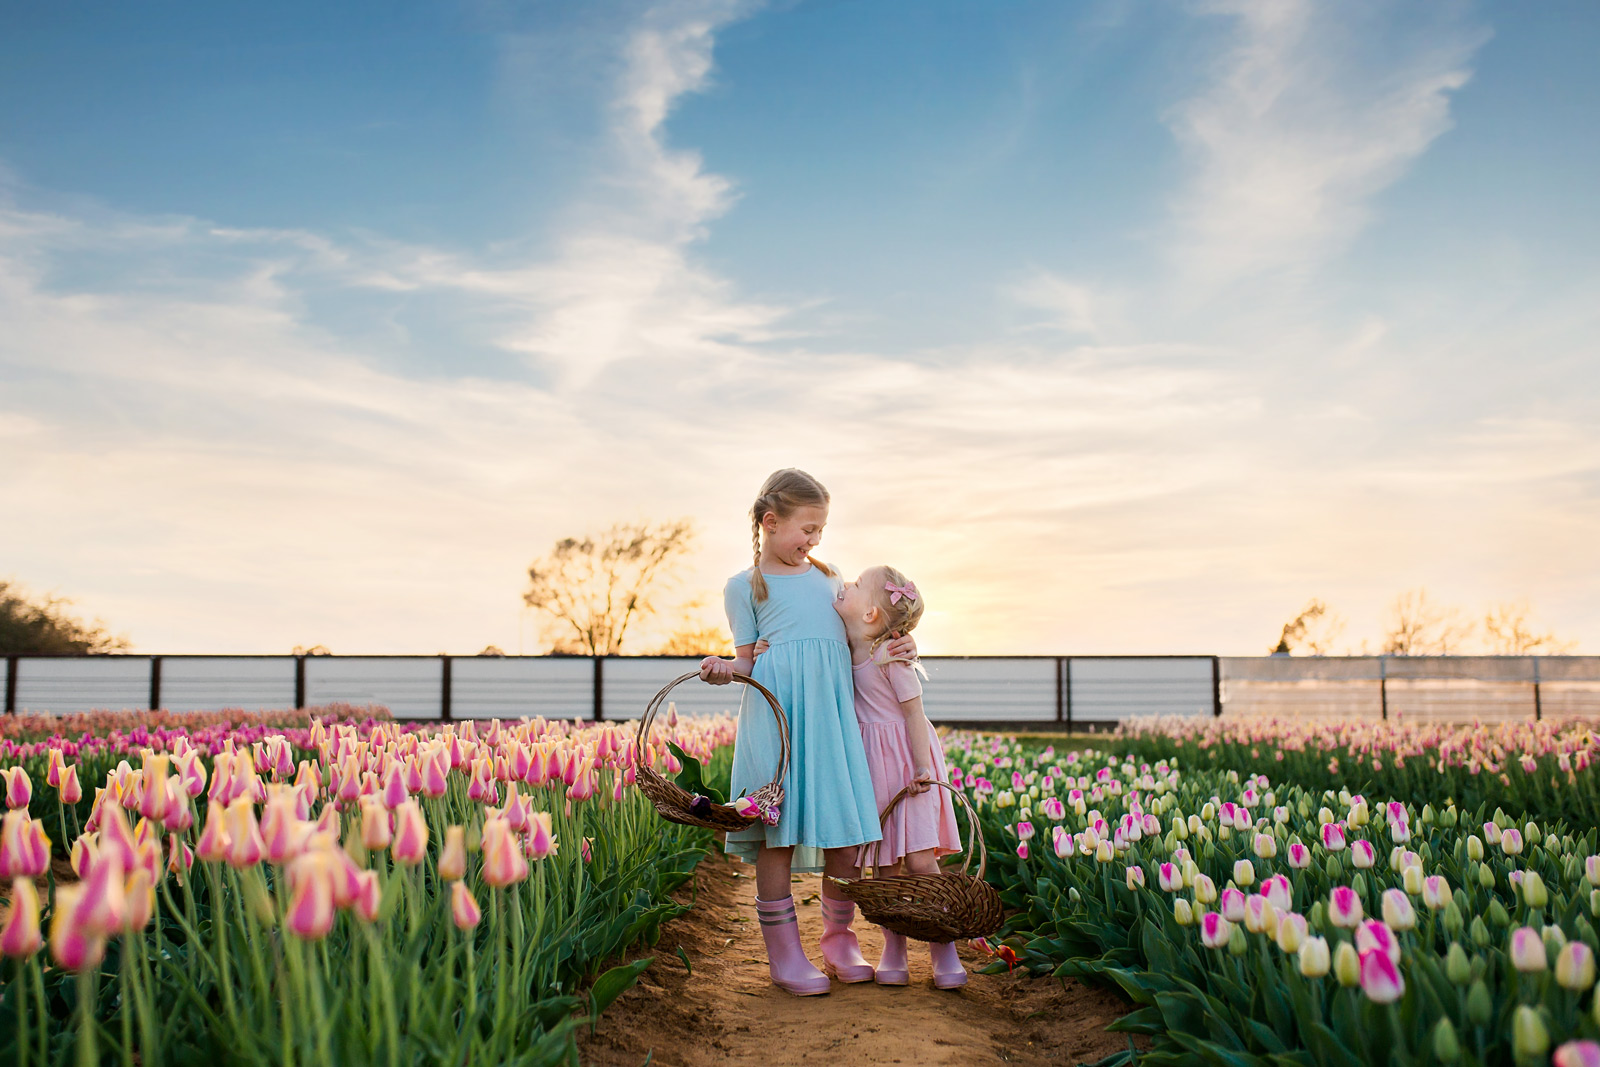 Two girls with flower baskets: Properly expose skies in photos